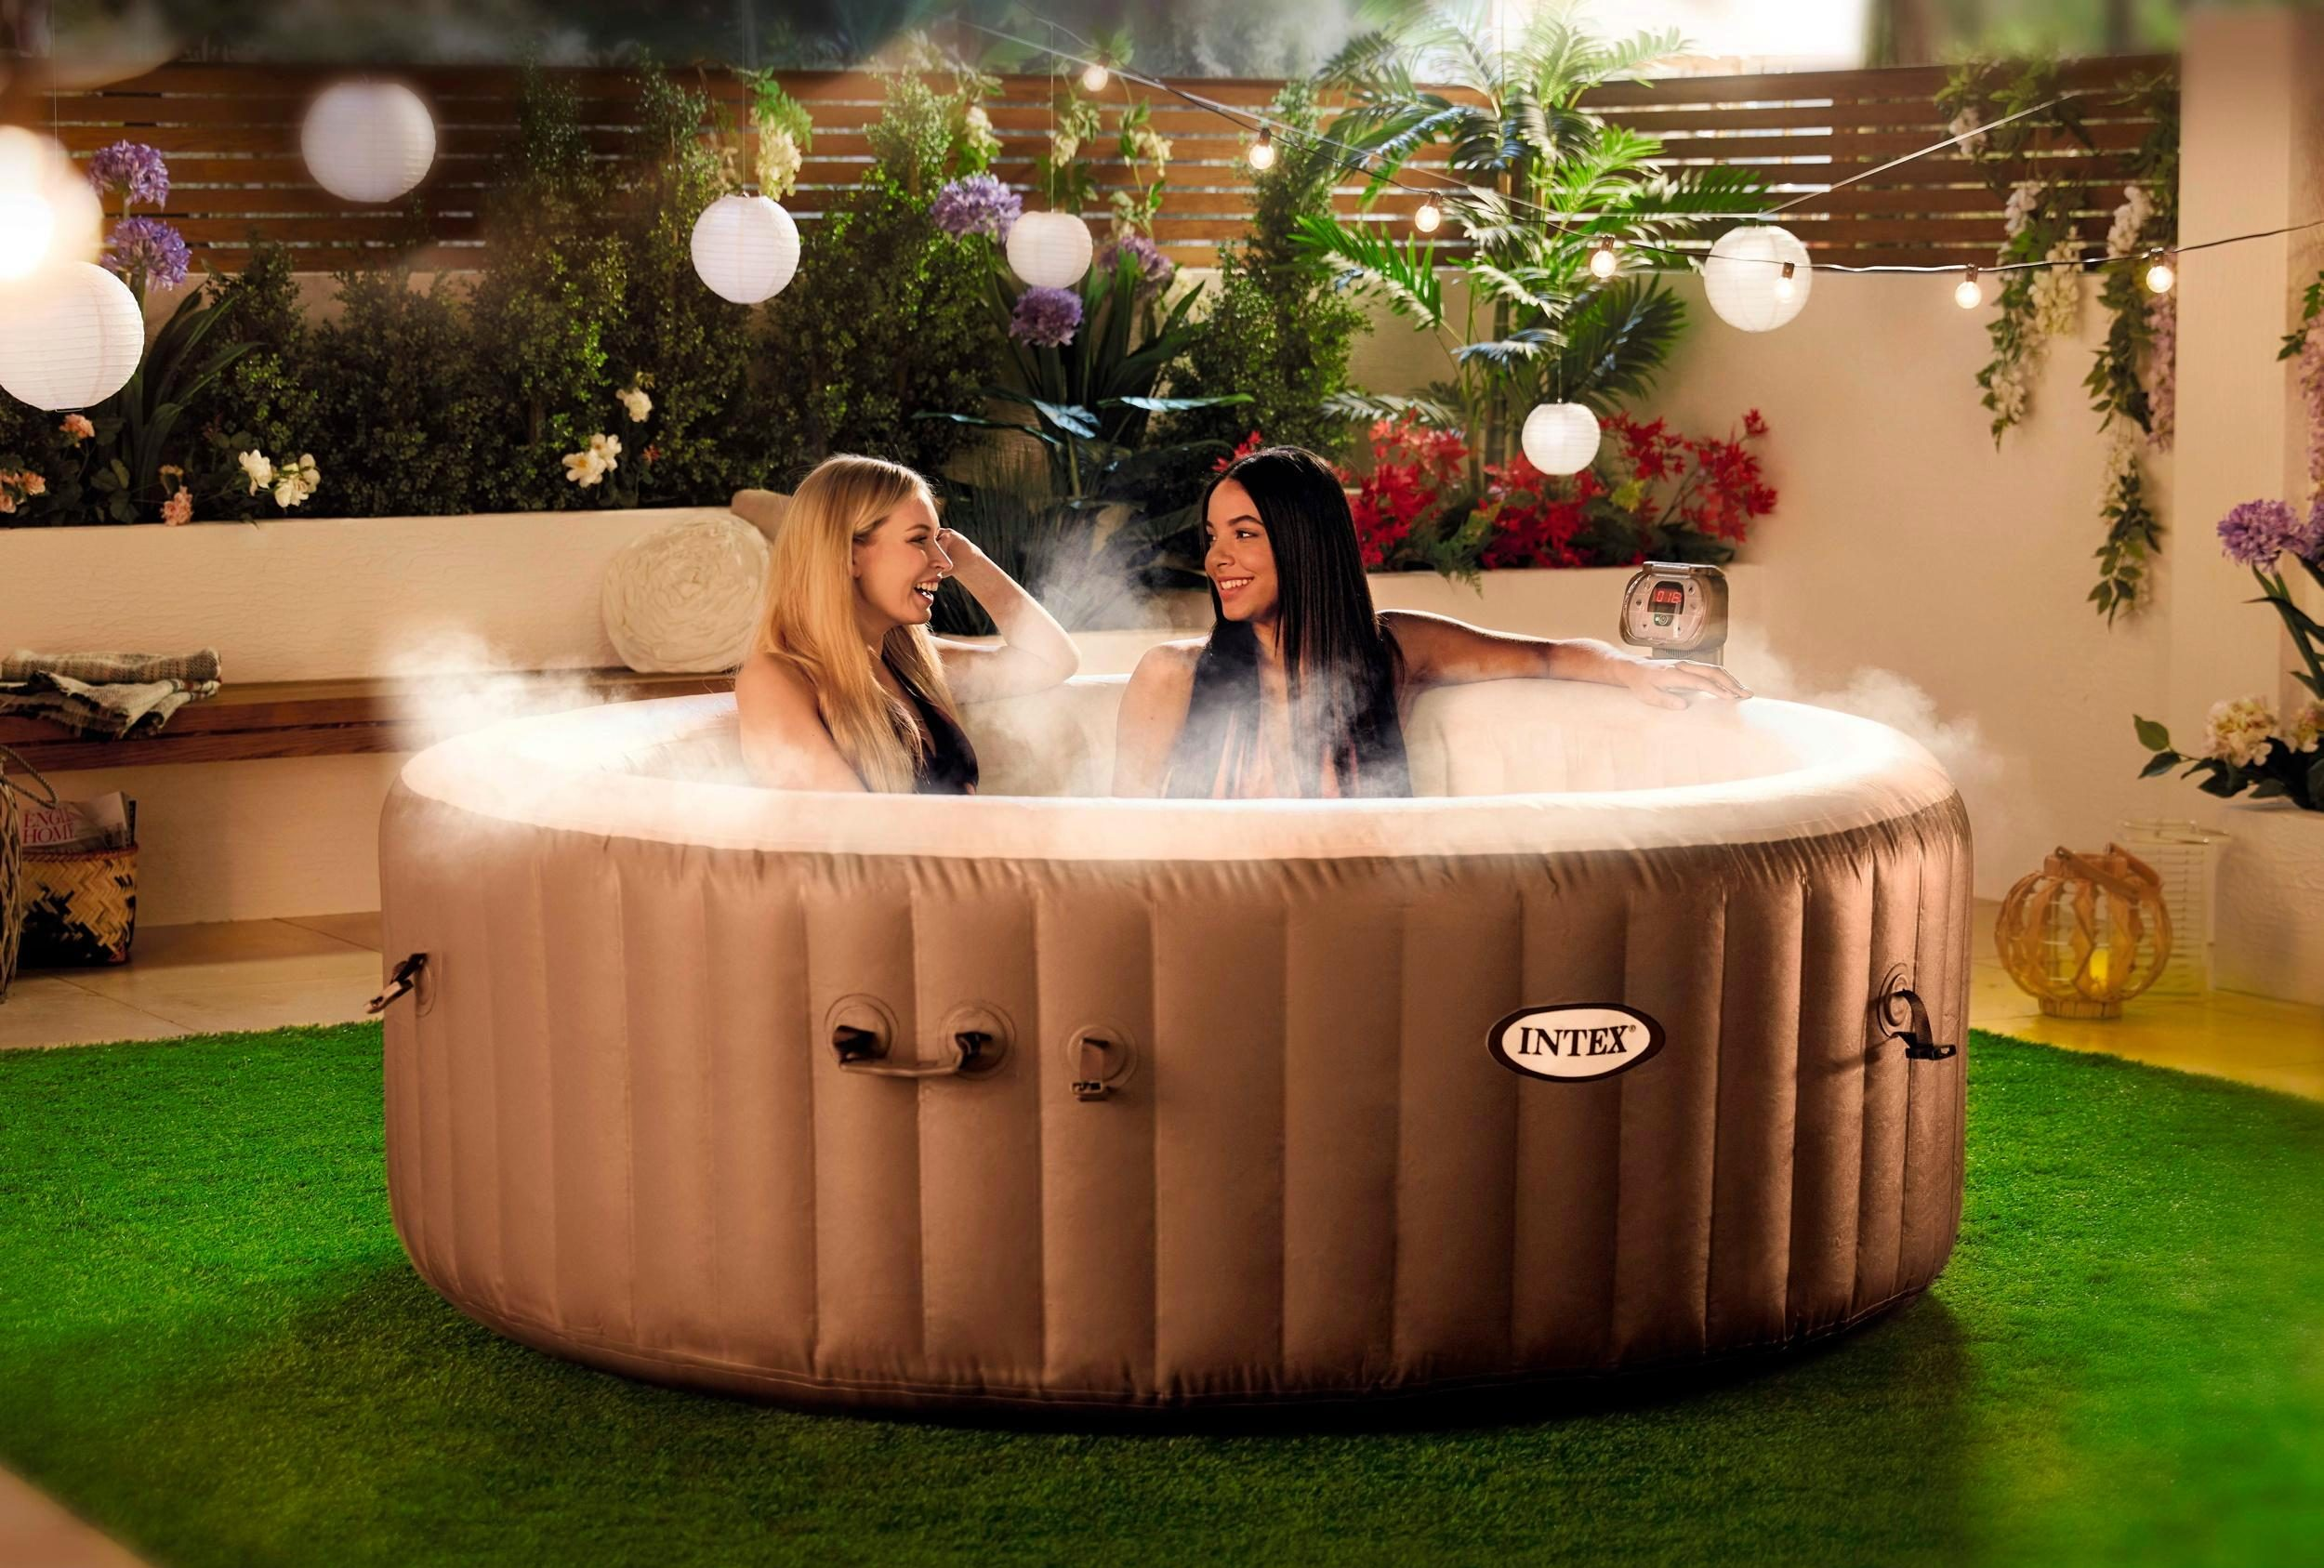 Jacuzzi Pool Top Caps Aldi Is Selling Hot Tubs Again For 280 The Same Price As Ones